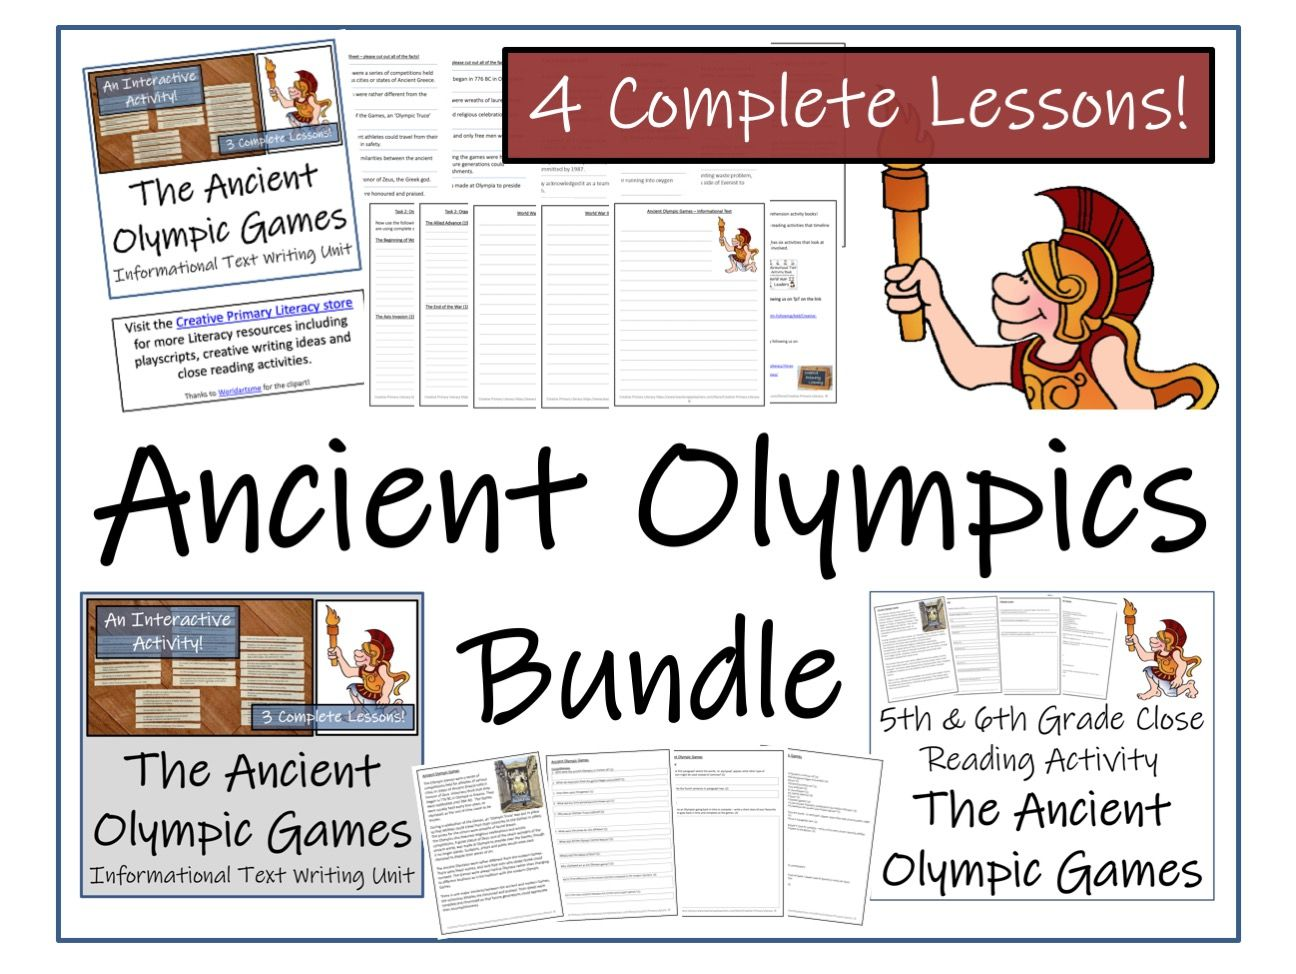 UKS2 History - Bundle of Ancient Olympic Games Activities